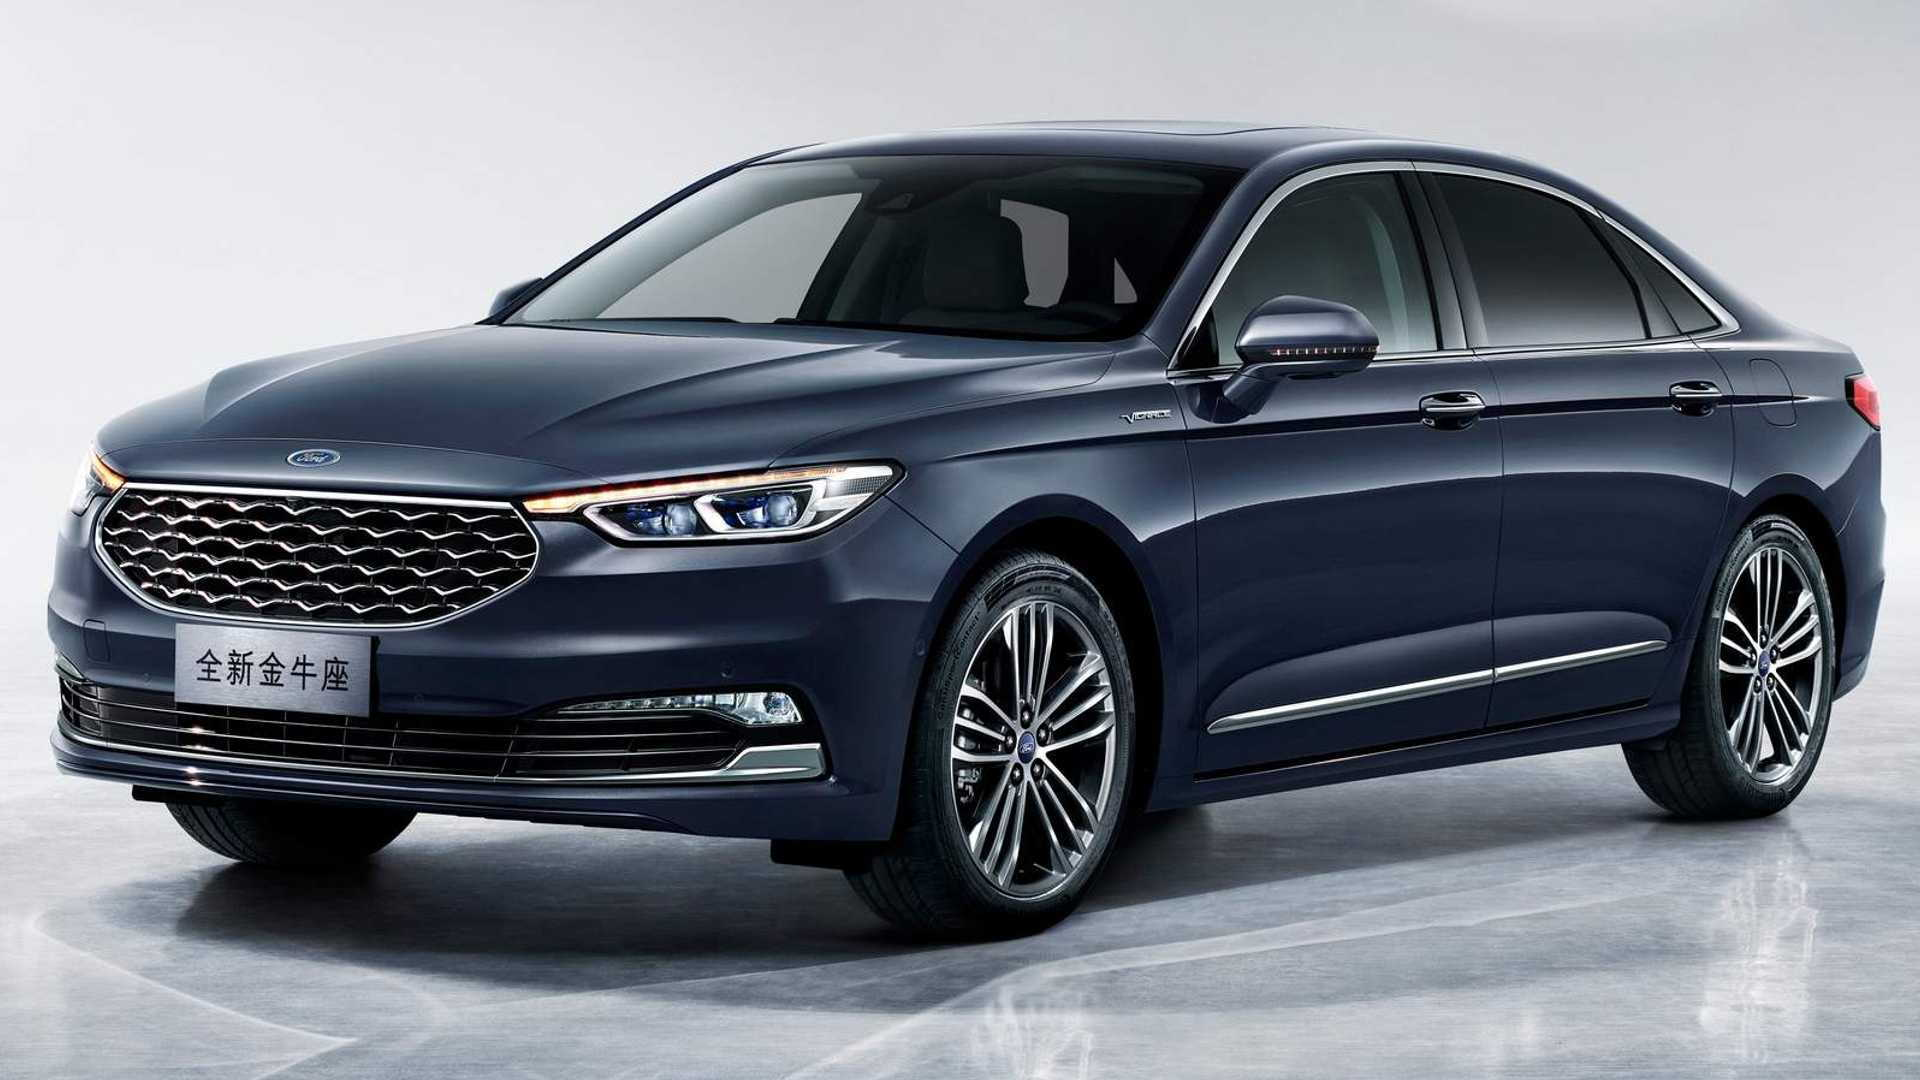 2020 Ford Taurus (Chinese spec)